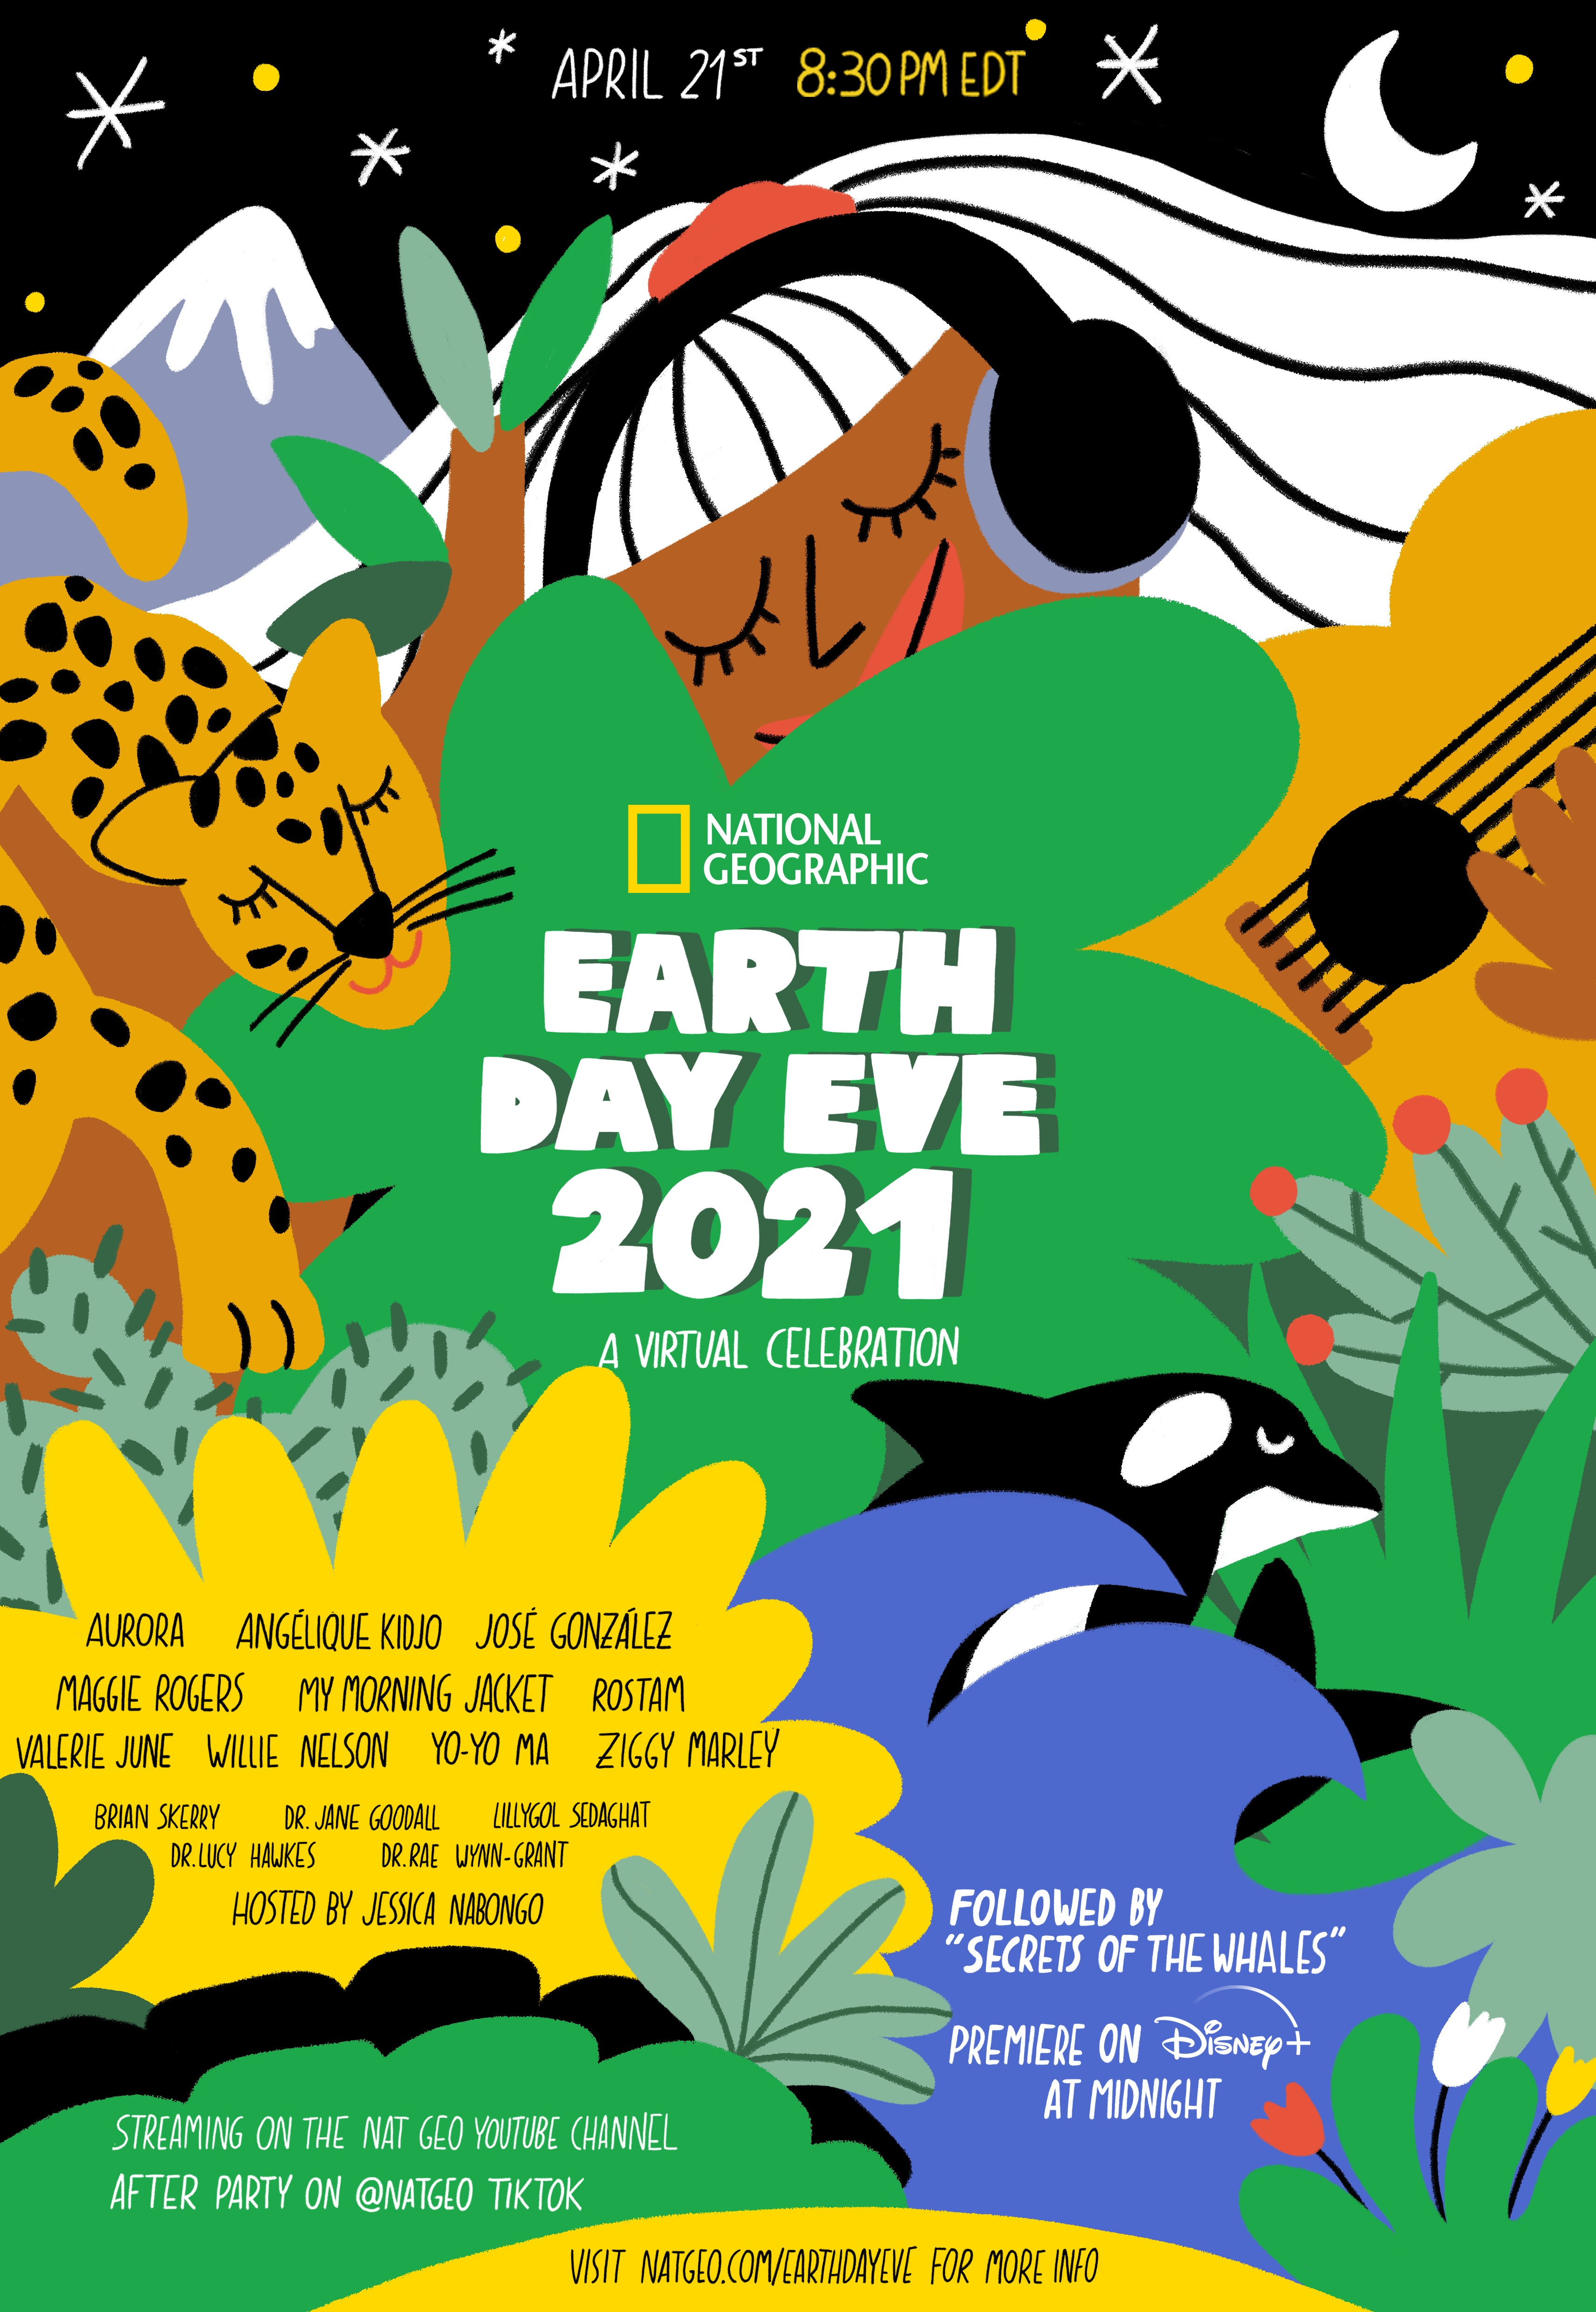 National Geographic - Earth Day Eve Poster Details